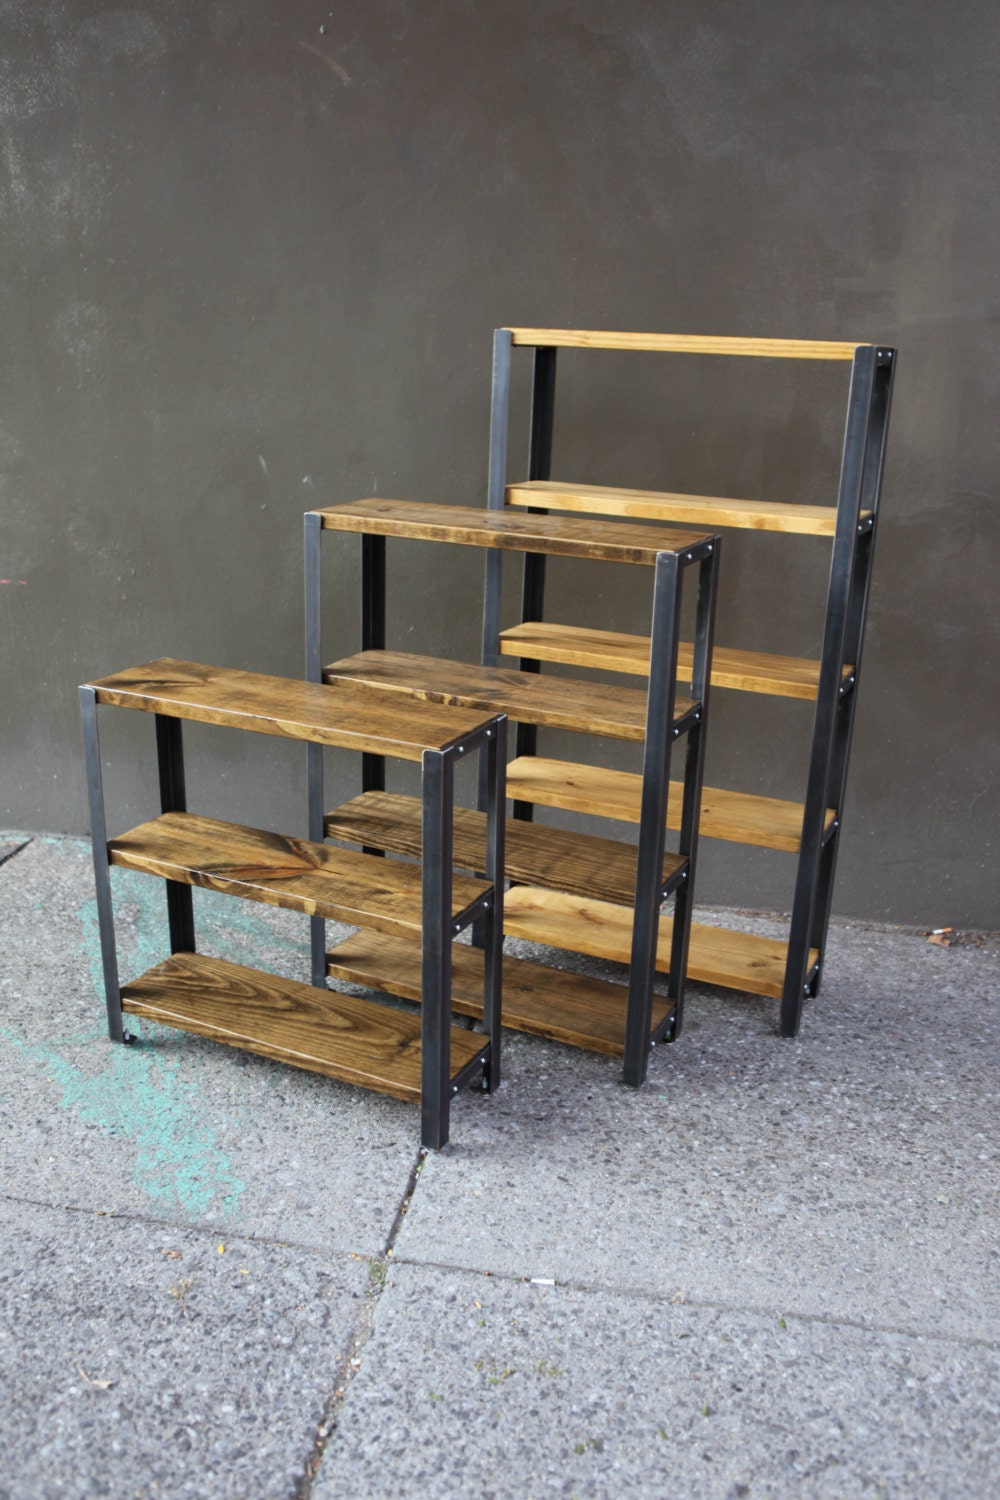 Reclaimed Wood Bookcase Reclaimed Wood Shelves Shelves